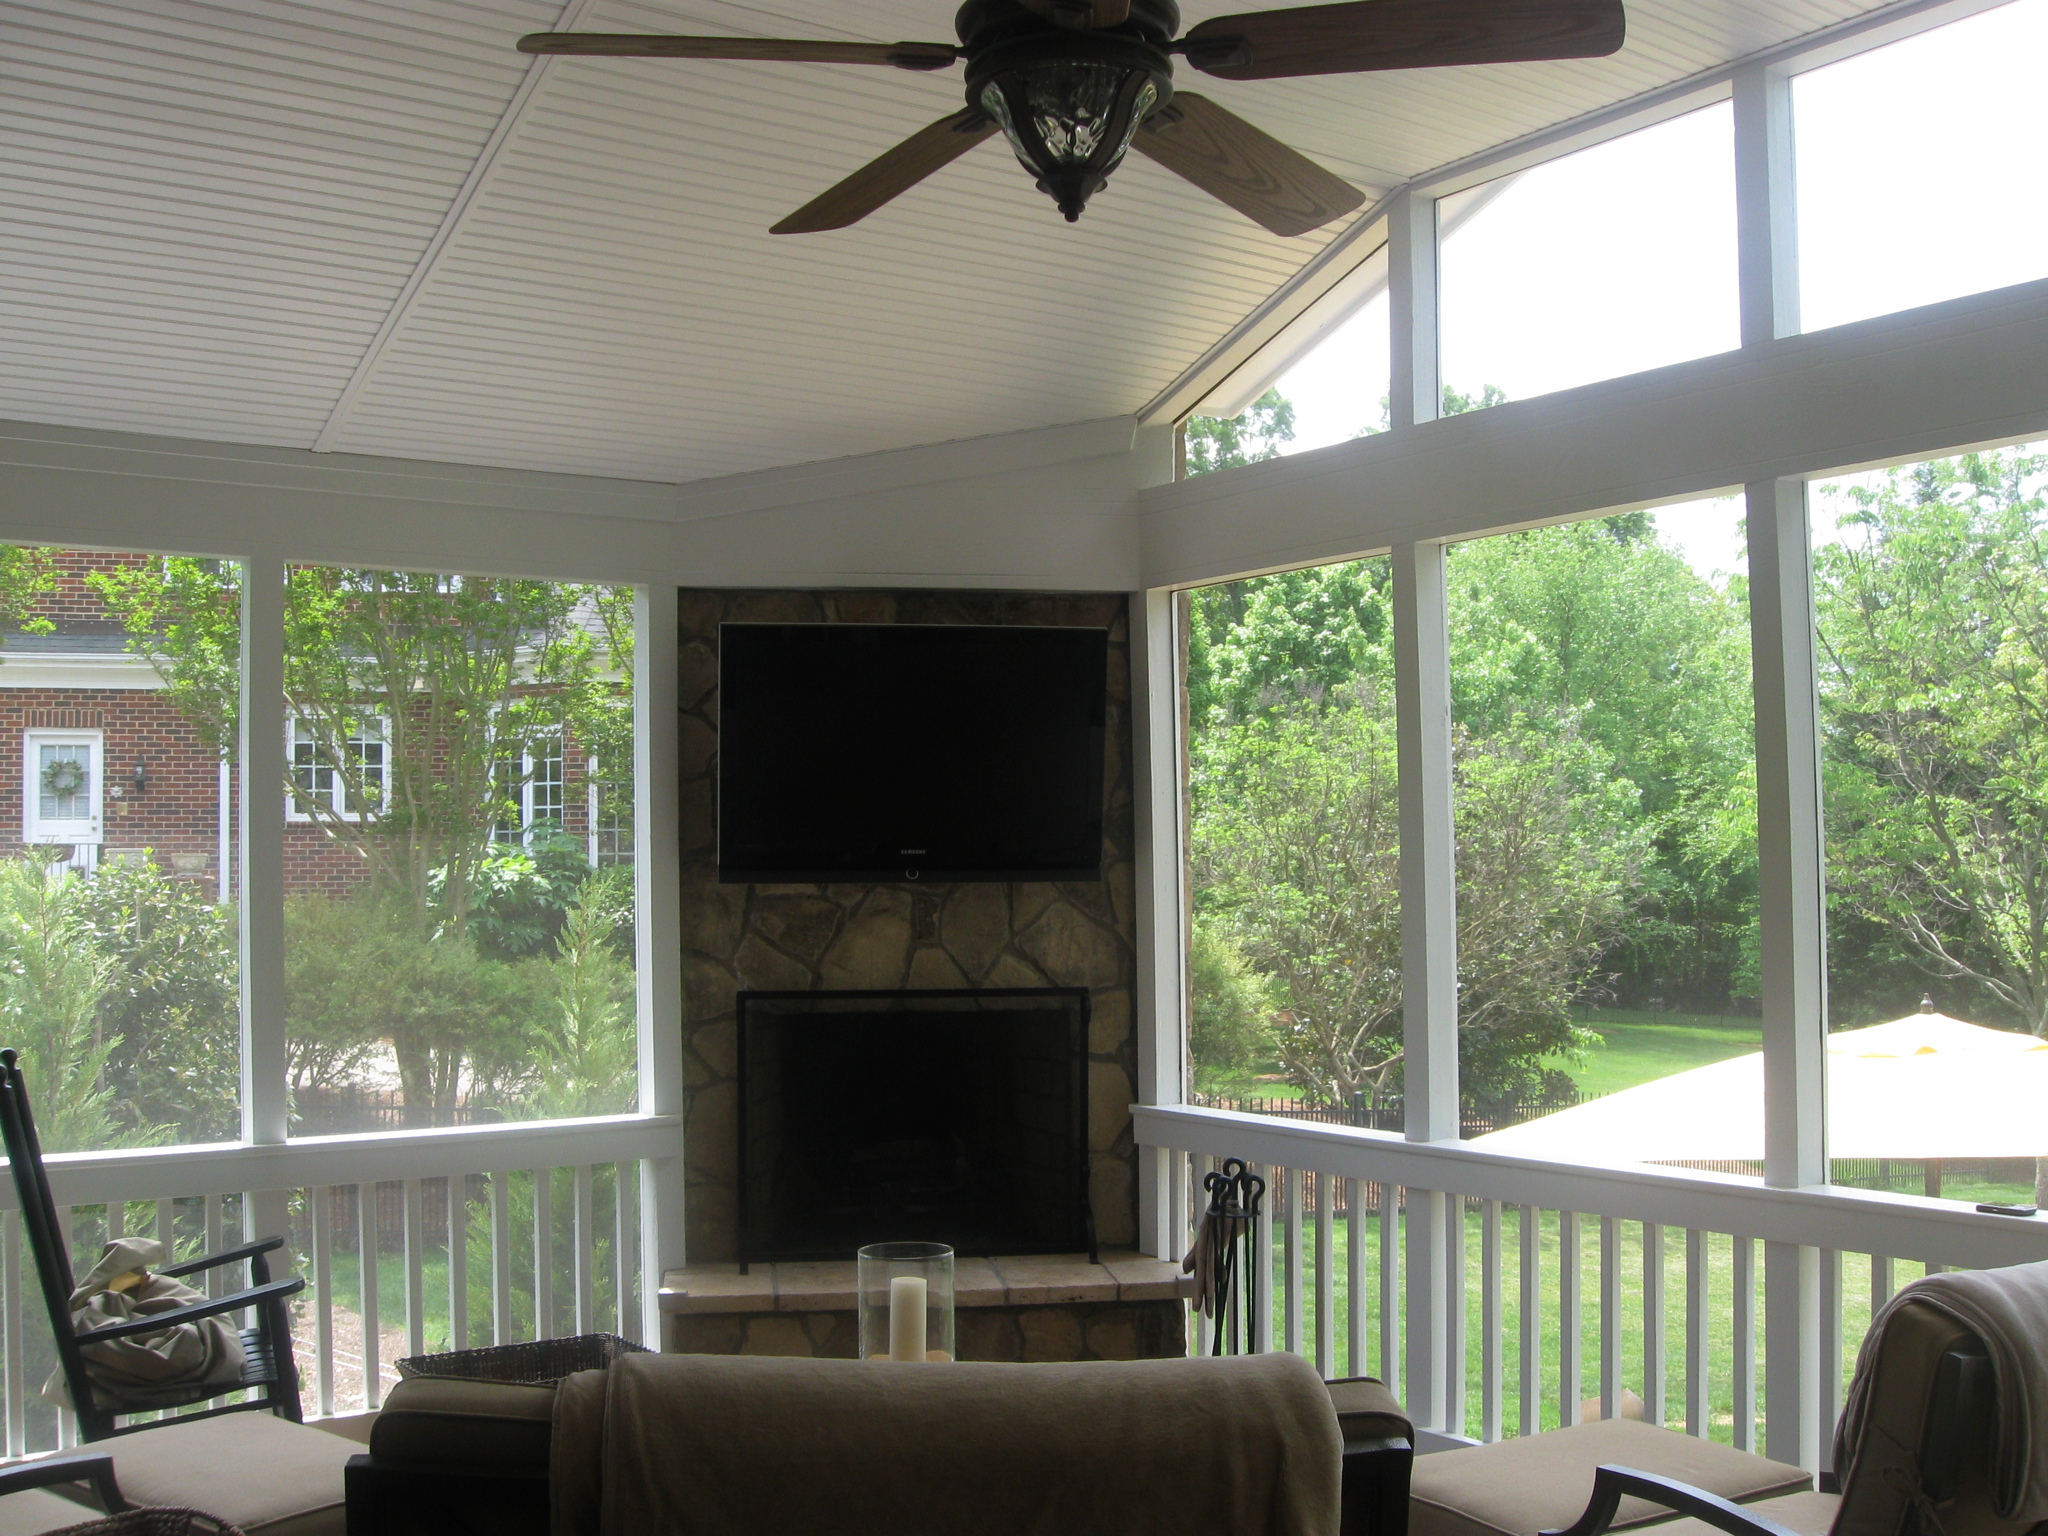 Sun rooms and porches with fireplaces the ultimate for Wood burning stove for screened porch